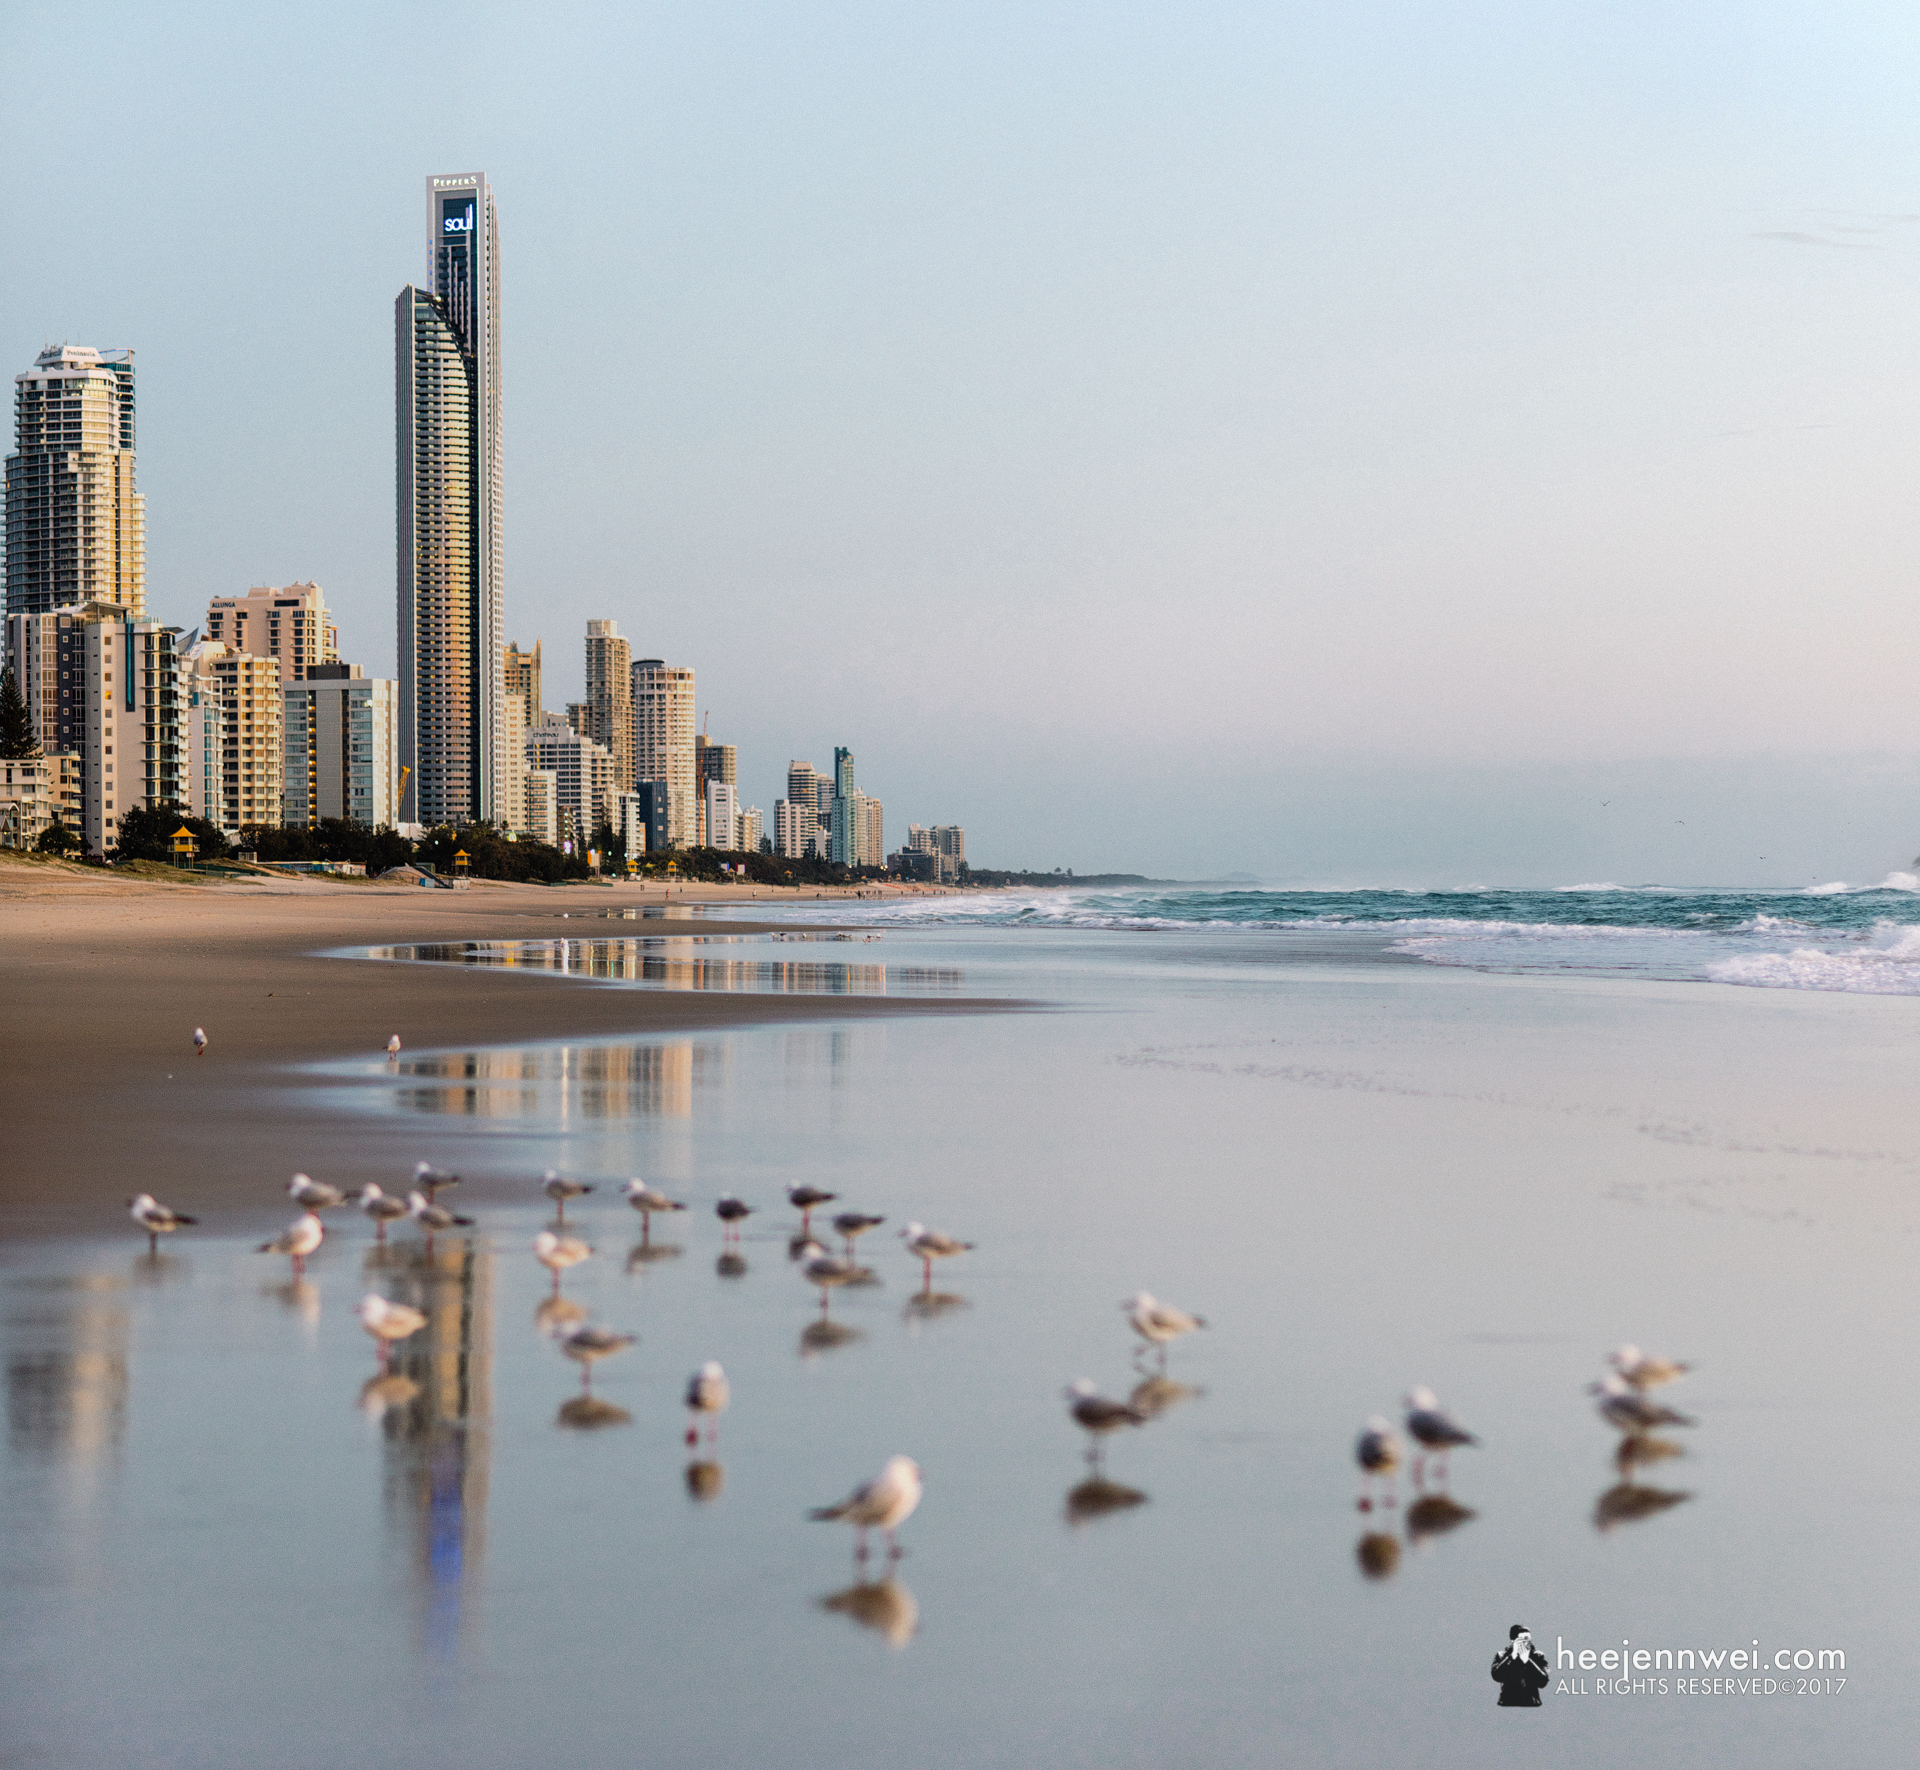 The next morning, i head out at 4.30am to catch the twilight before sunrise. Flock of Silver Gulls formed a visual mass in the foreground, the shoreline shaped a leading line in the mid-ground, the signature towering skyline defined the background of Gold Coast and reflected.